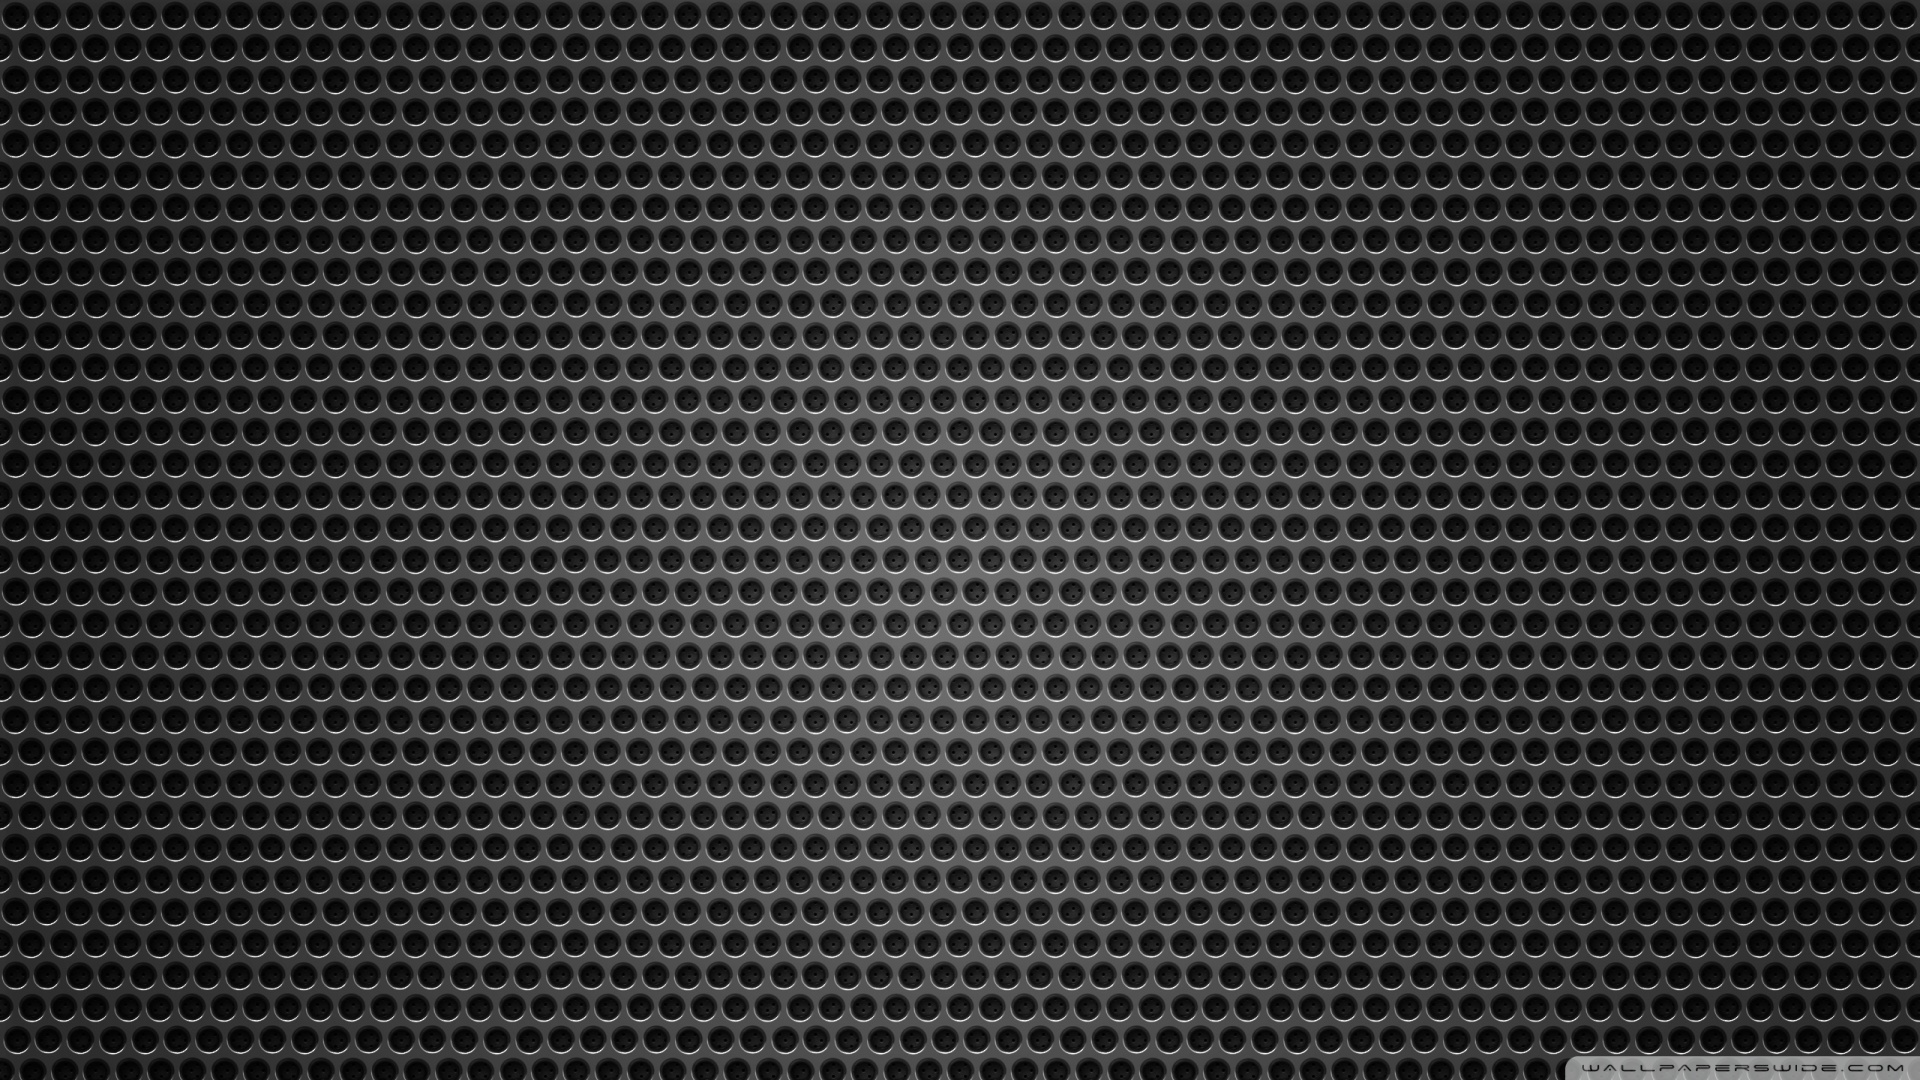 Black Backgrounds Wallpapers